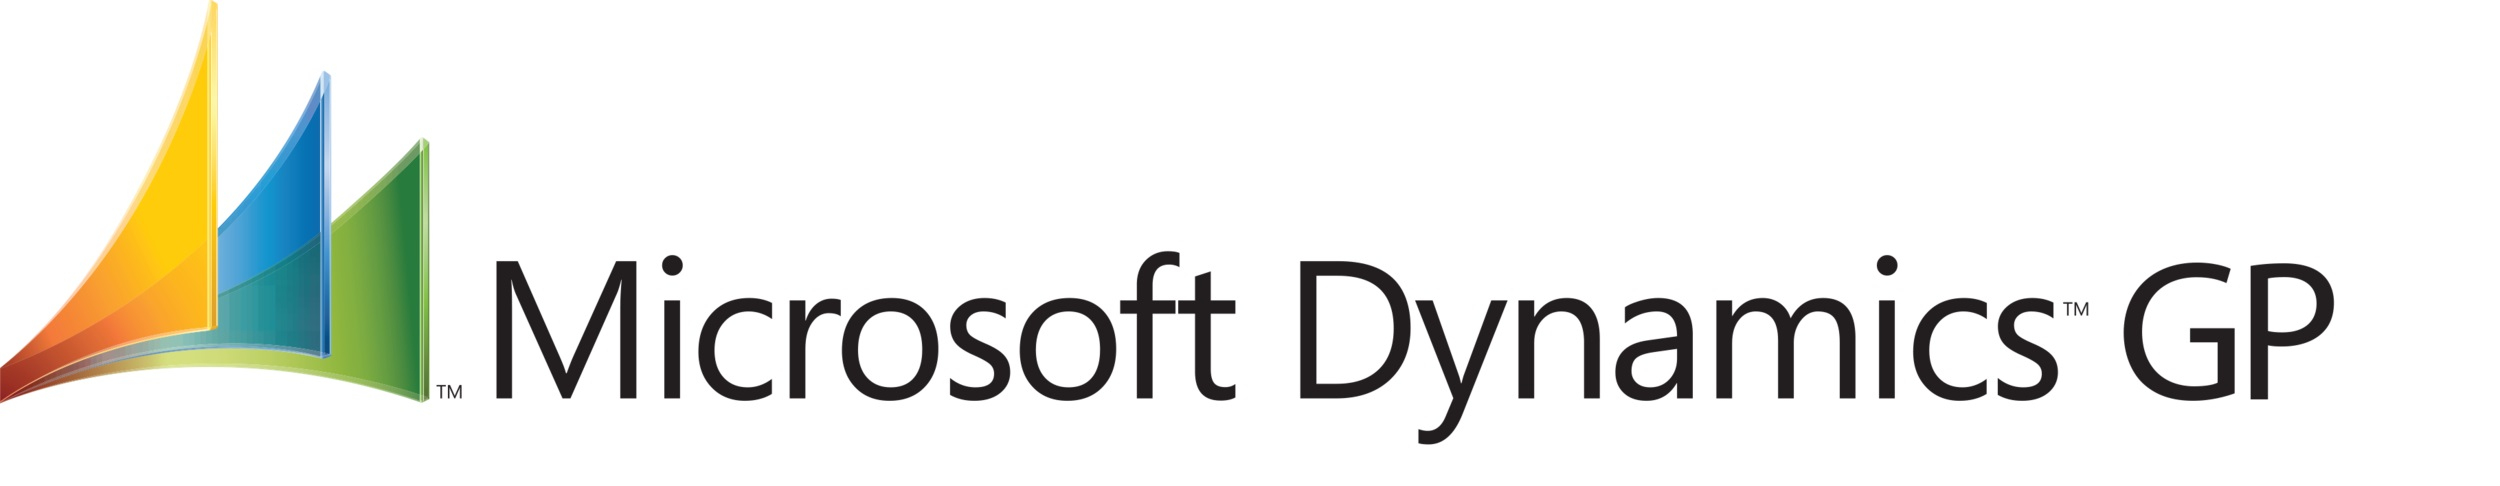 Copy of Microsoft Dynamics GP Logo